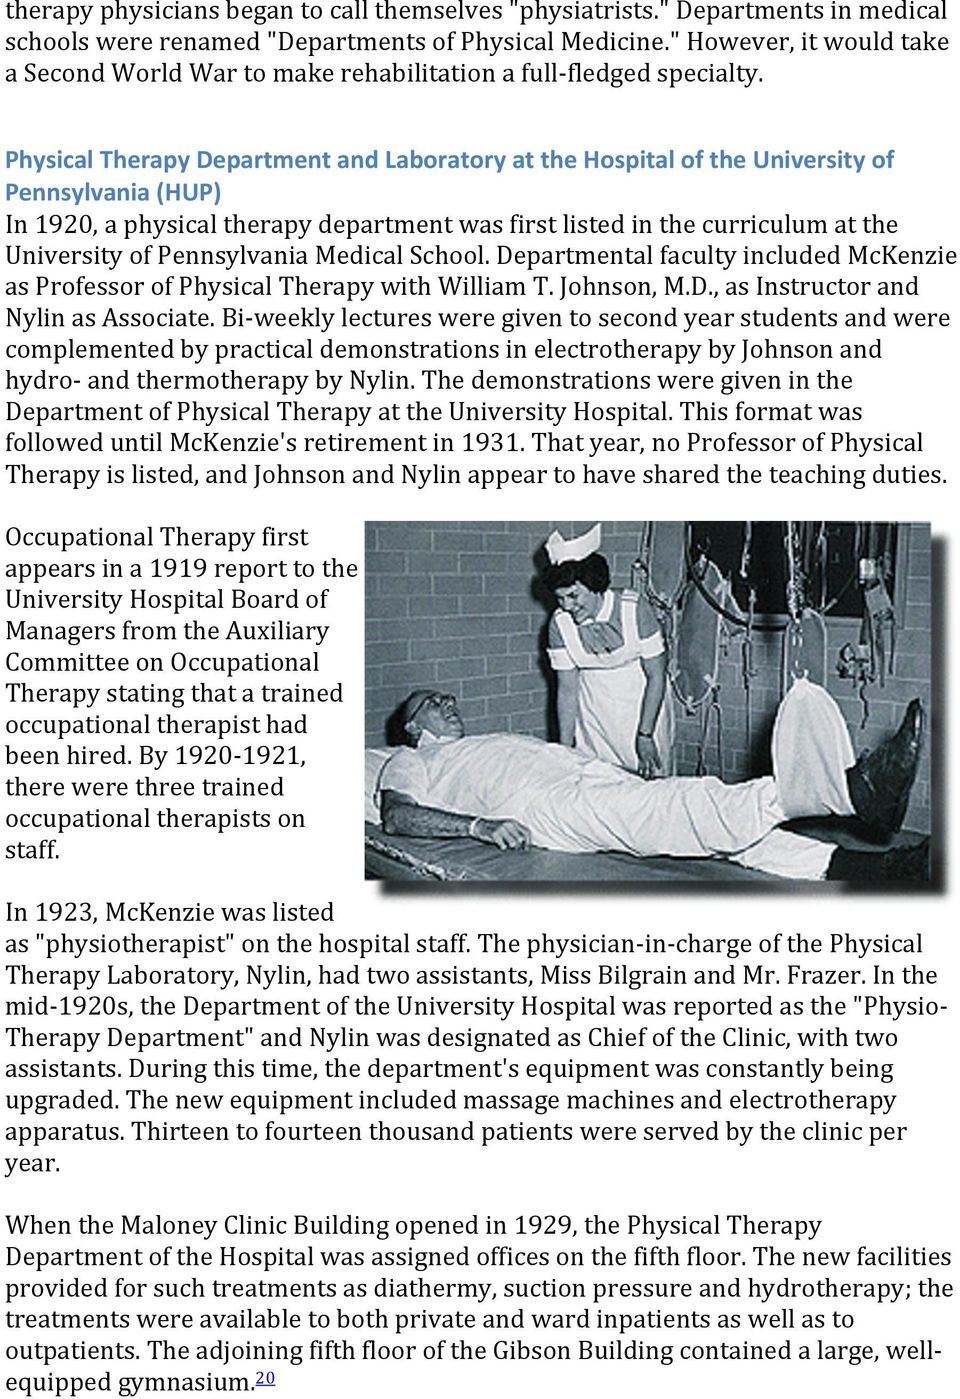 Physical Therapy Department and Laboratory at the Hospital of the University of Pennsylvania (HUP) In 1920, a physical therapy department was first listed in the curriculum at the University of